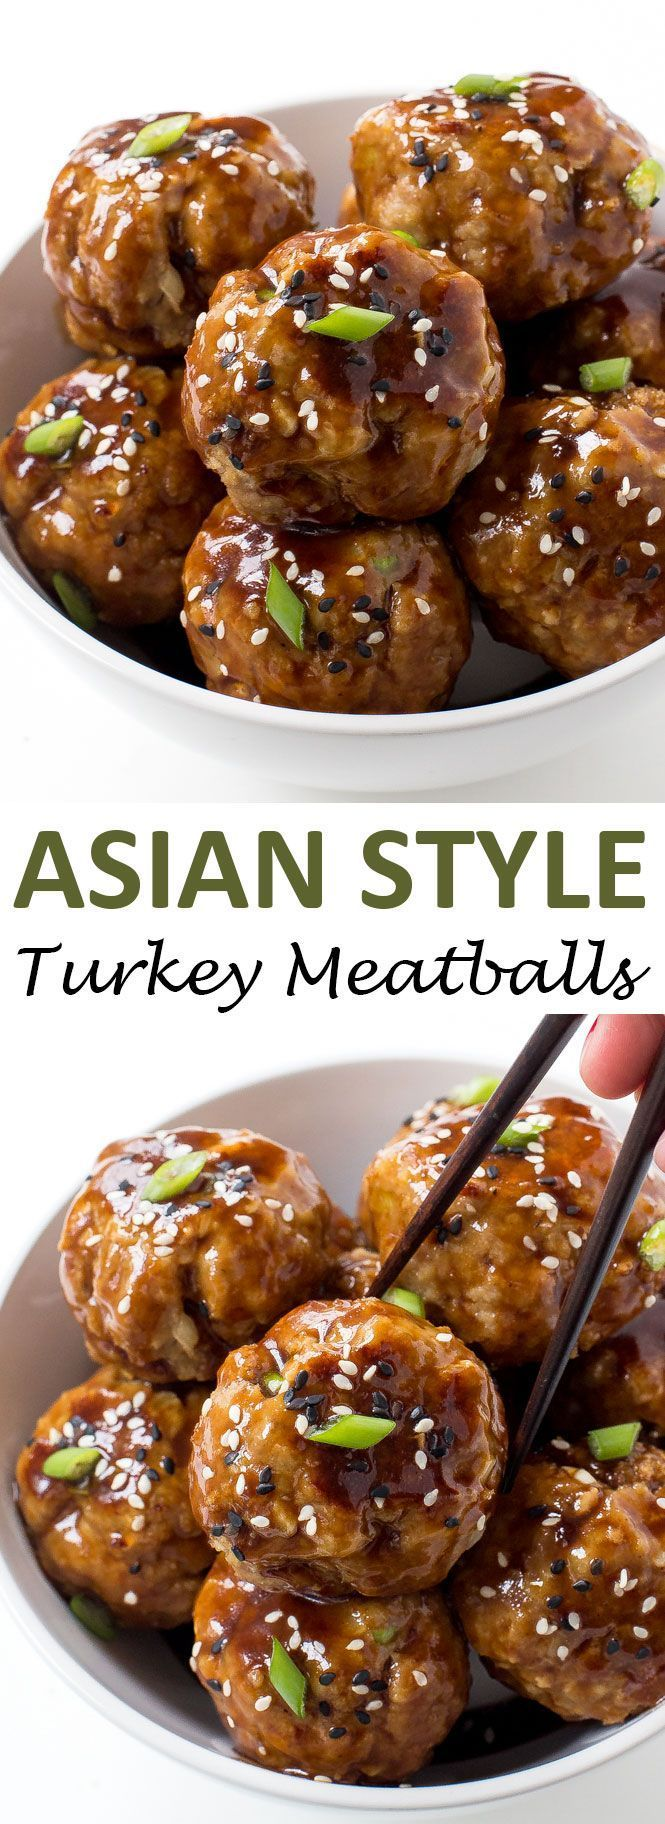 30 Minute Asian Turkey Meatballs. Baked and tossed in an Asian inspired sauce. Serve as an appetizer or add rice to make it a meal